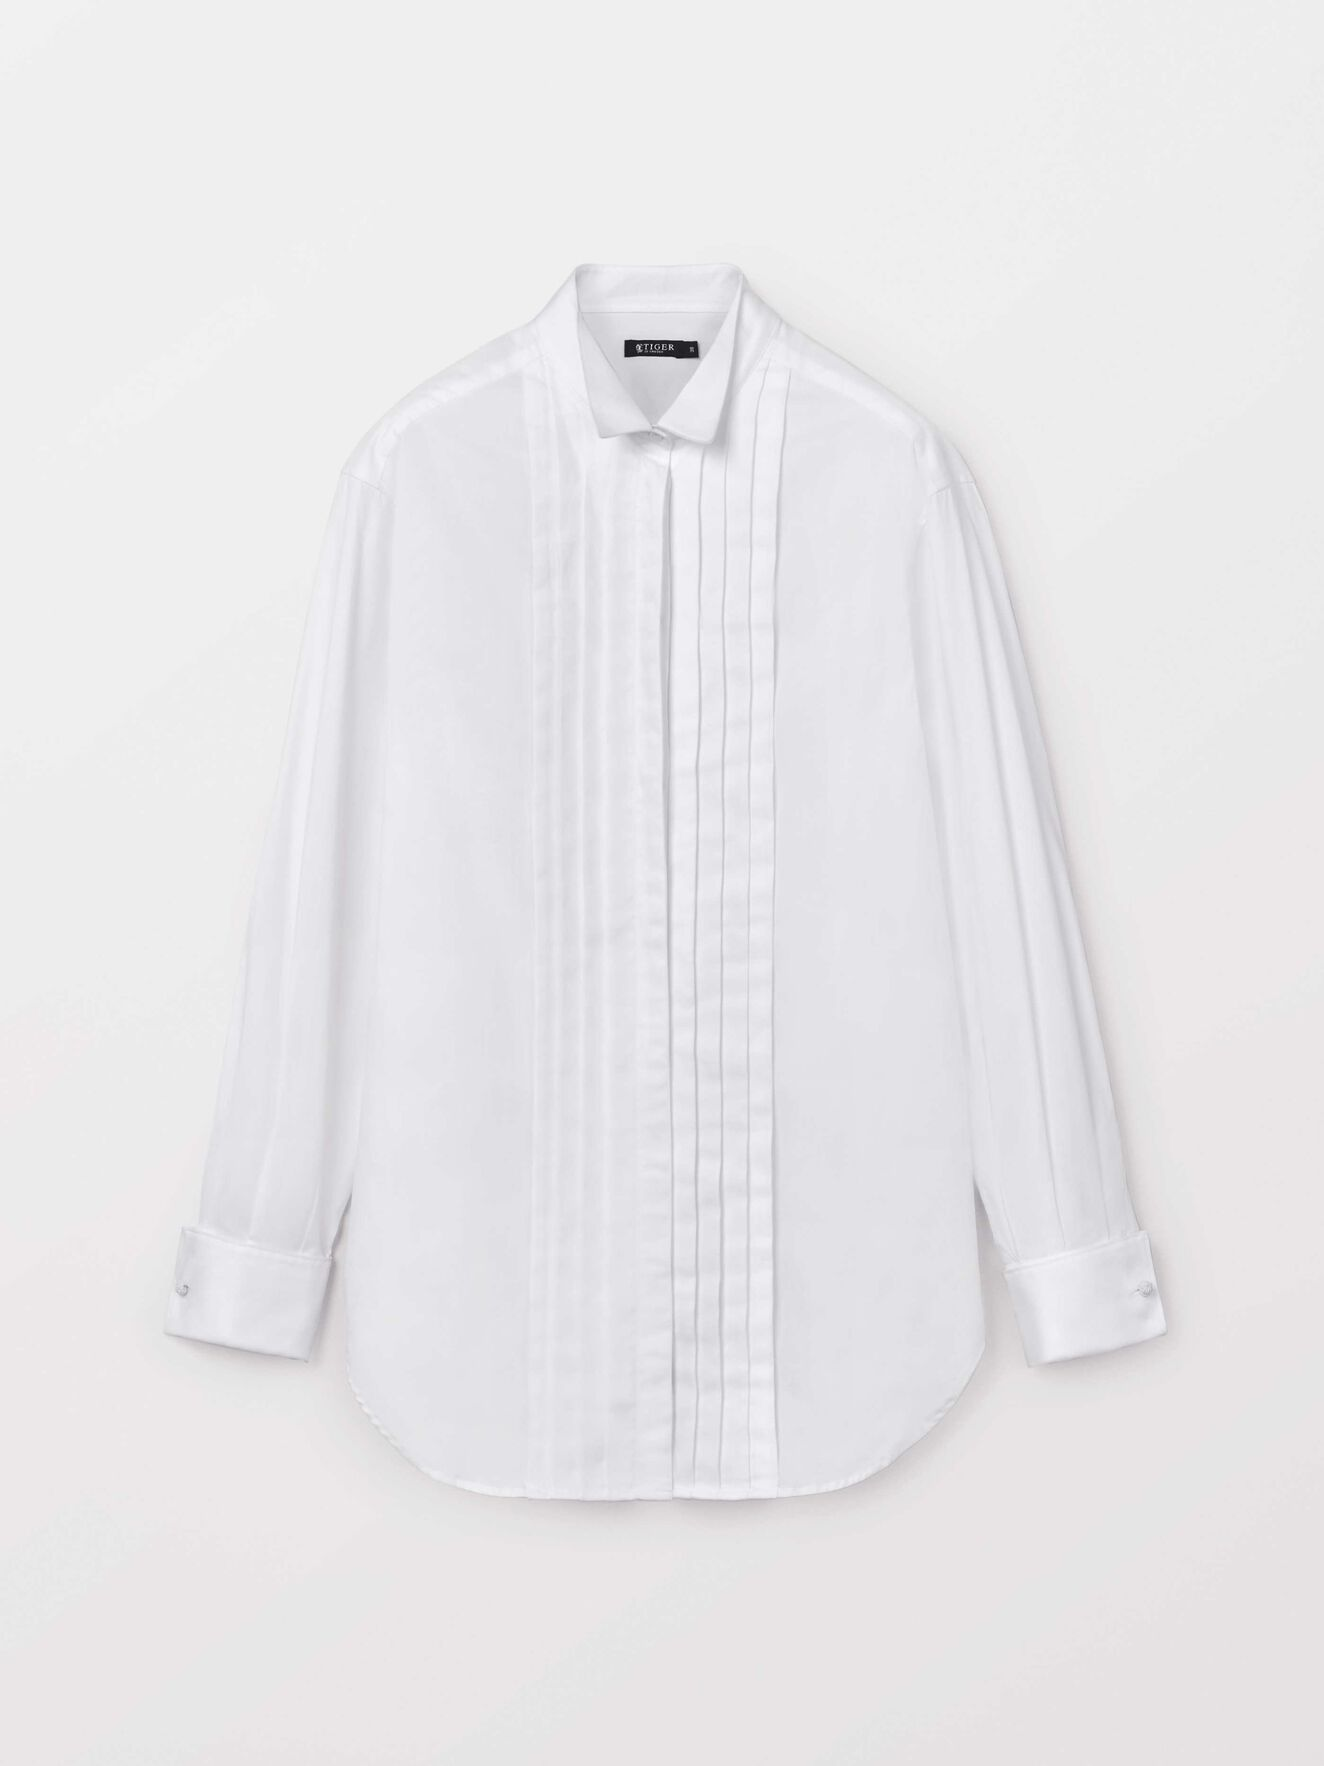 Kolv Co Bluse in Bright White from Tiger of Sweden